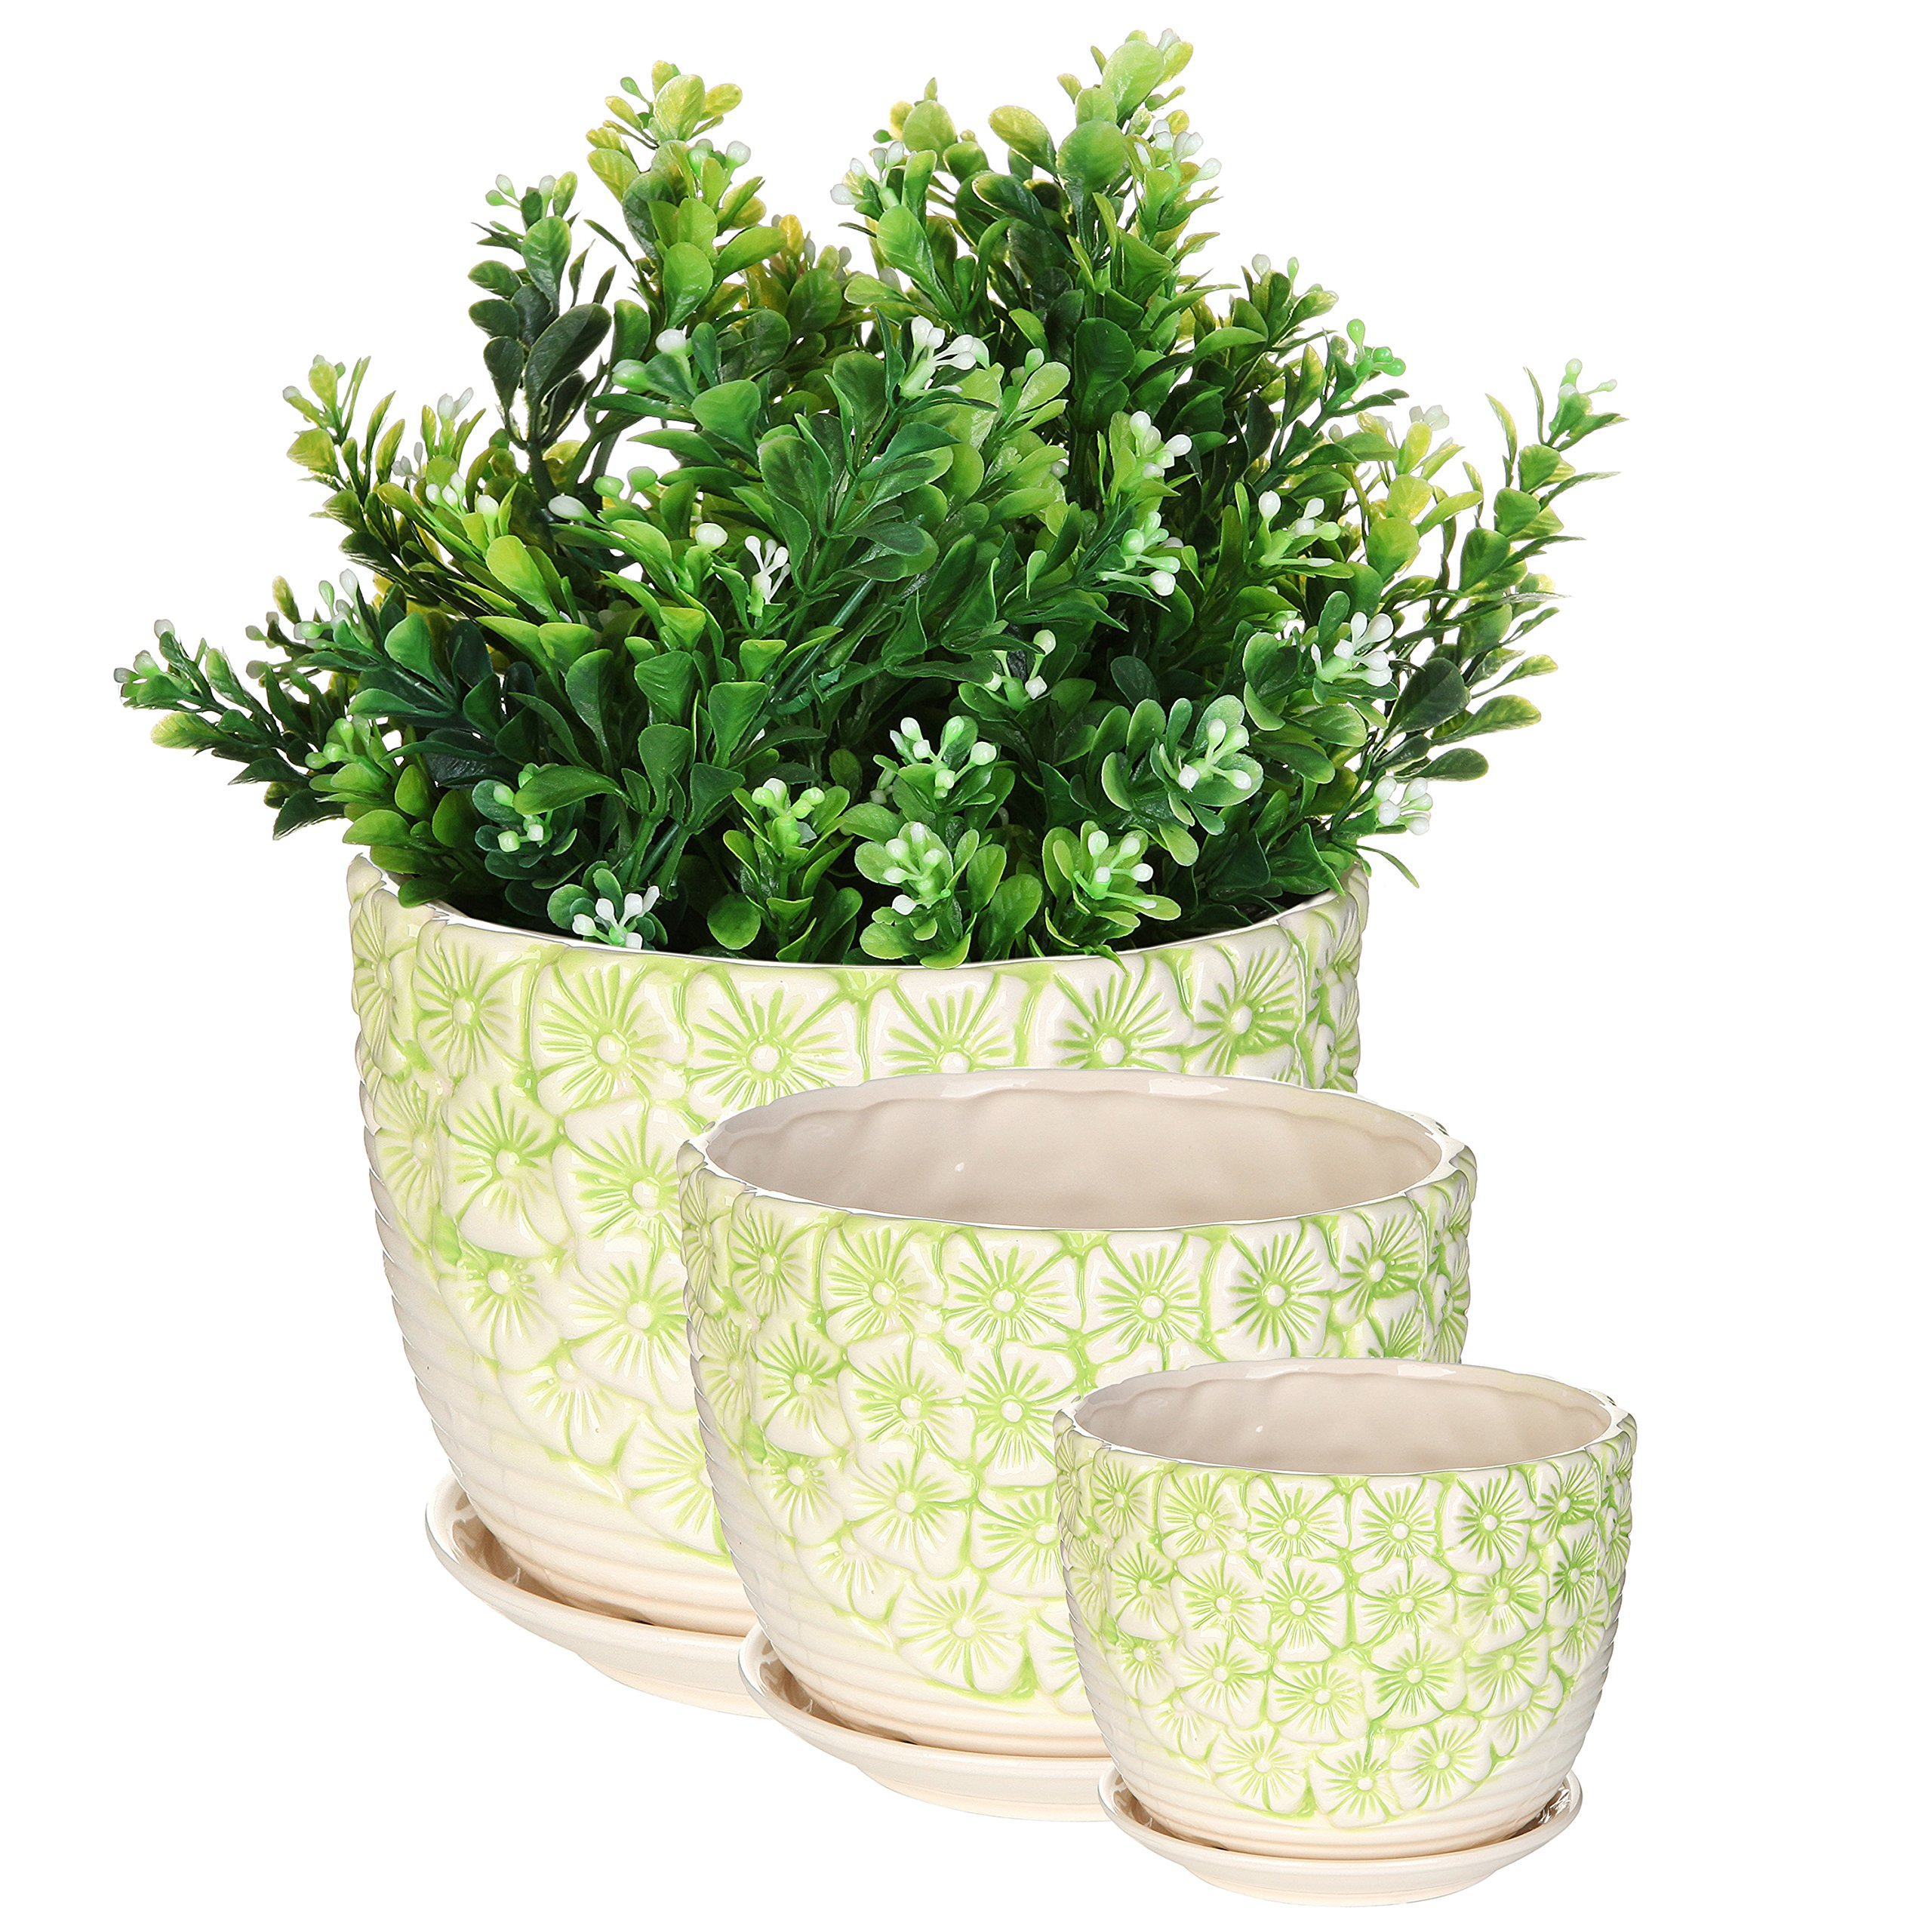 MyGift Set of 3 Green & White Flower Design Nesting Ceramic Planter Pots/Plant Containers w/Attached Saucers by MyGift